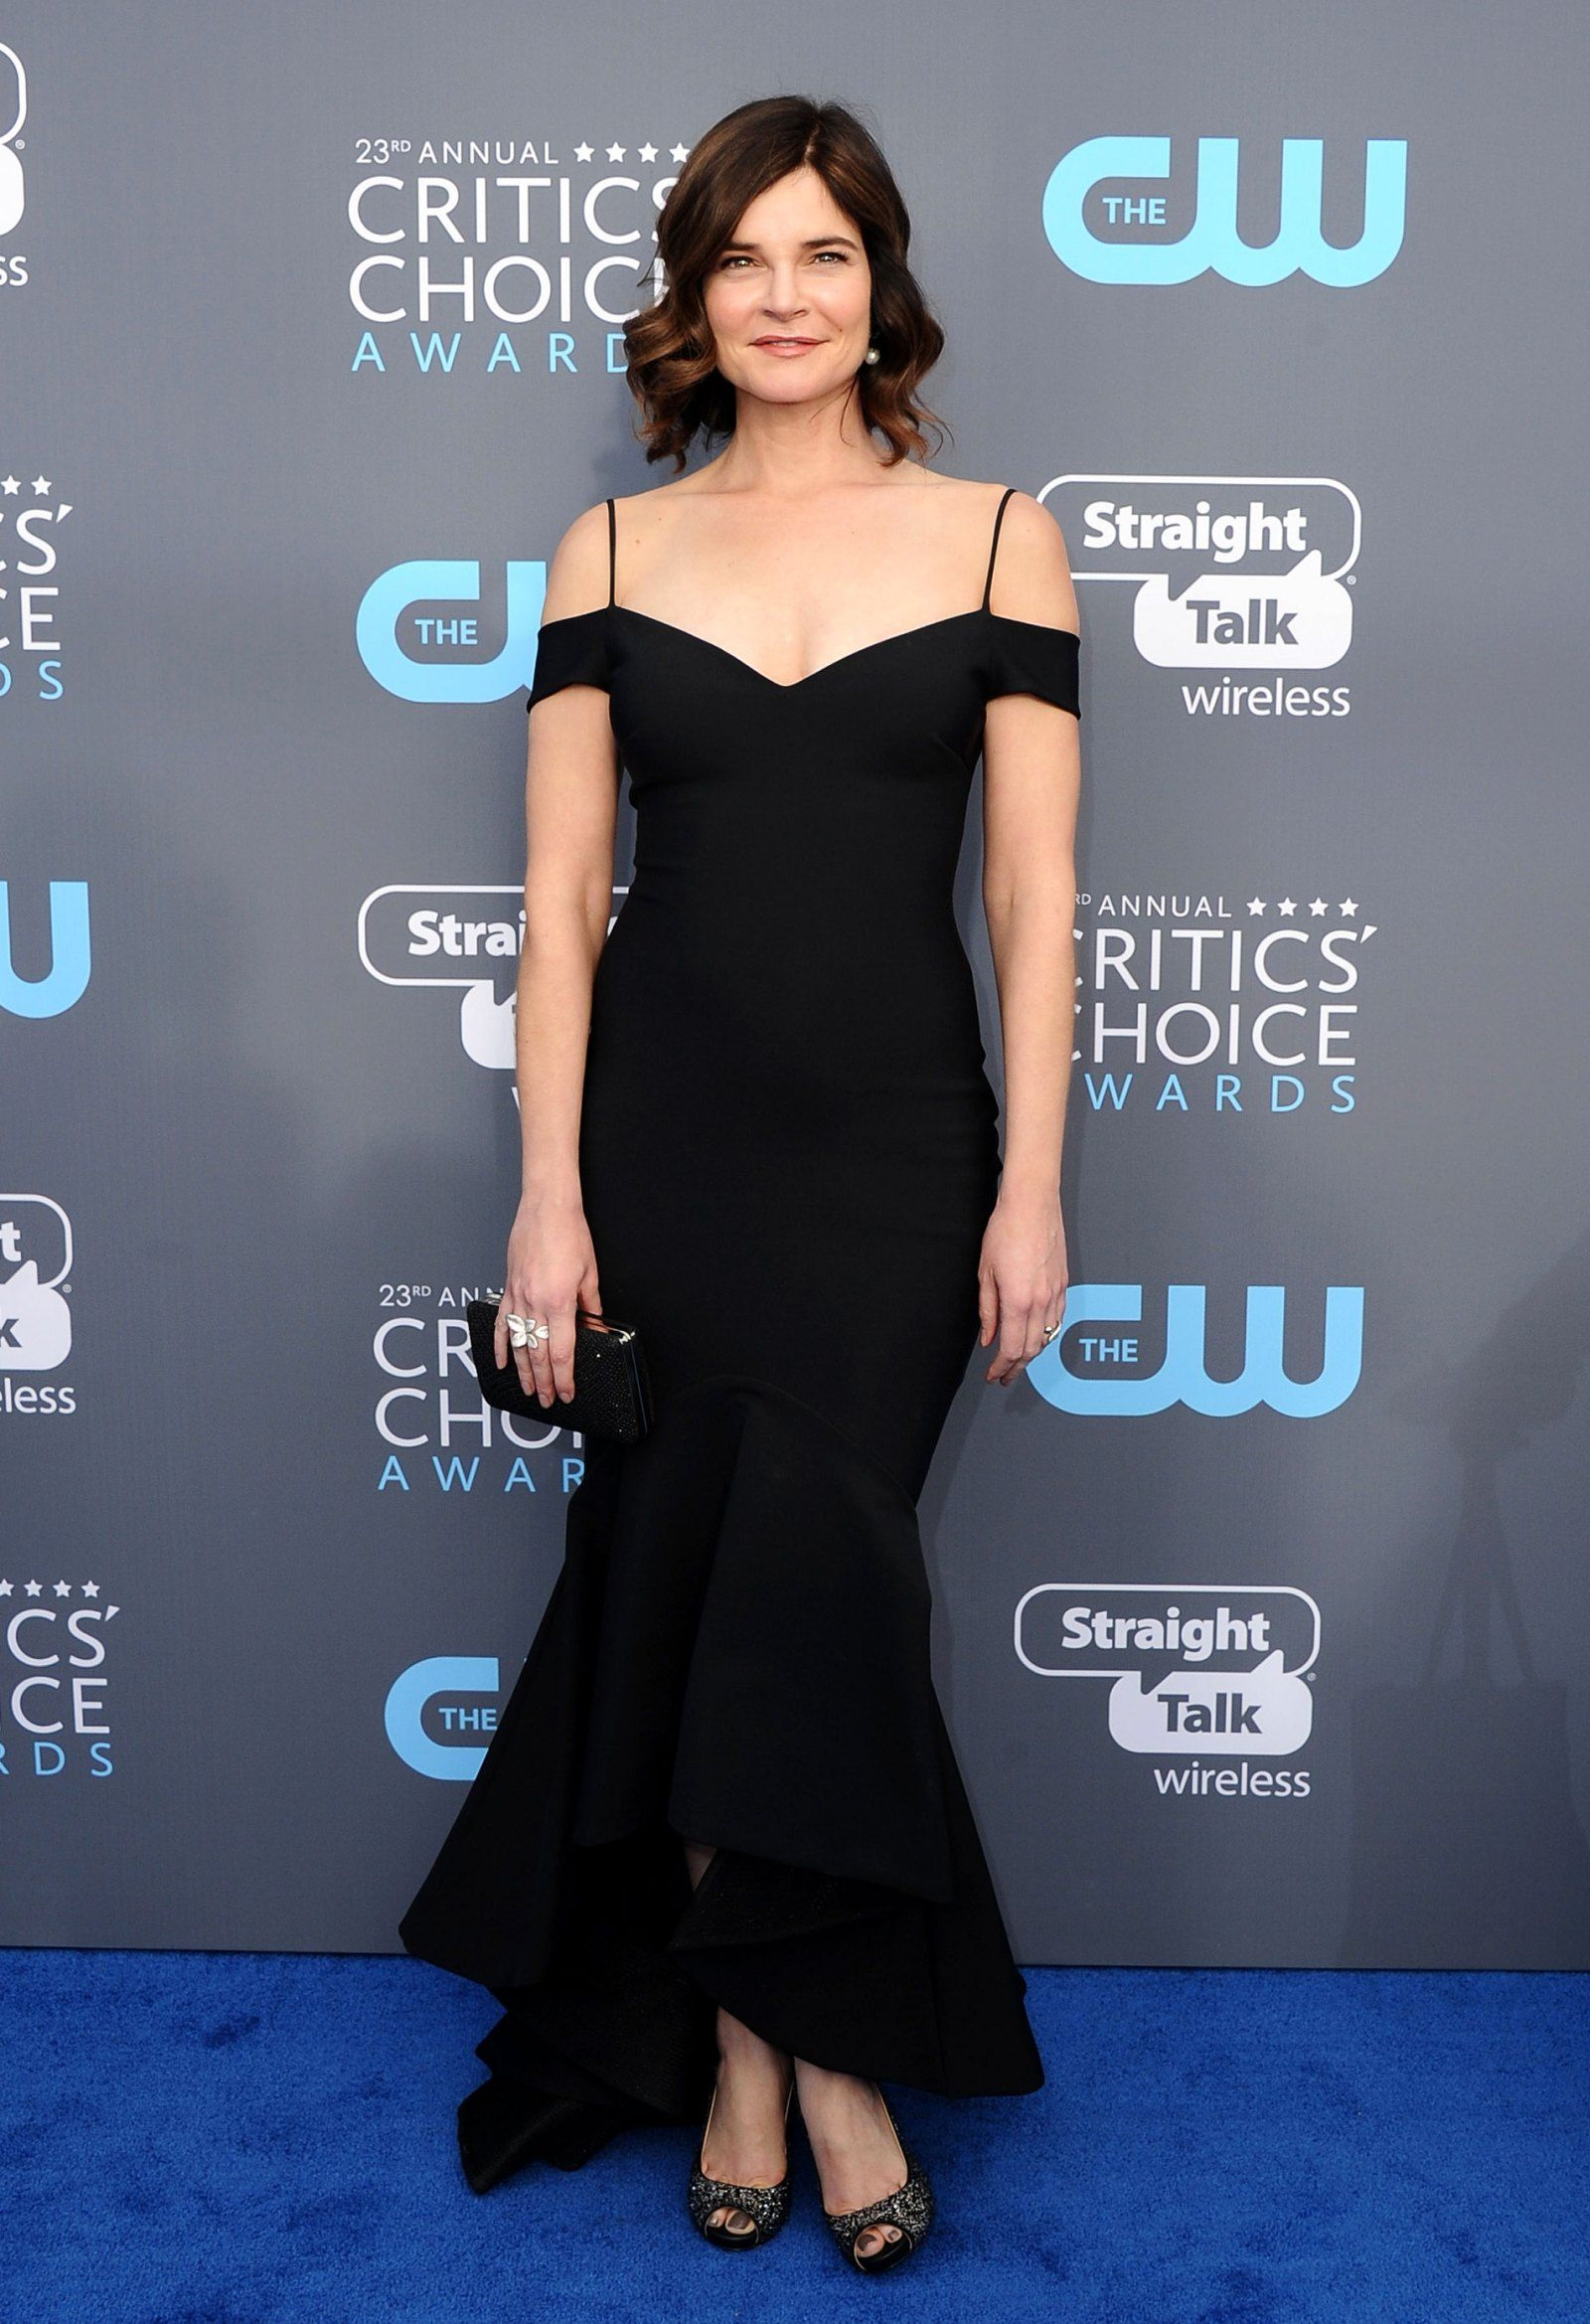 See What the Stars Wore to the Critics' Choice Awards 2018